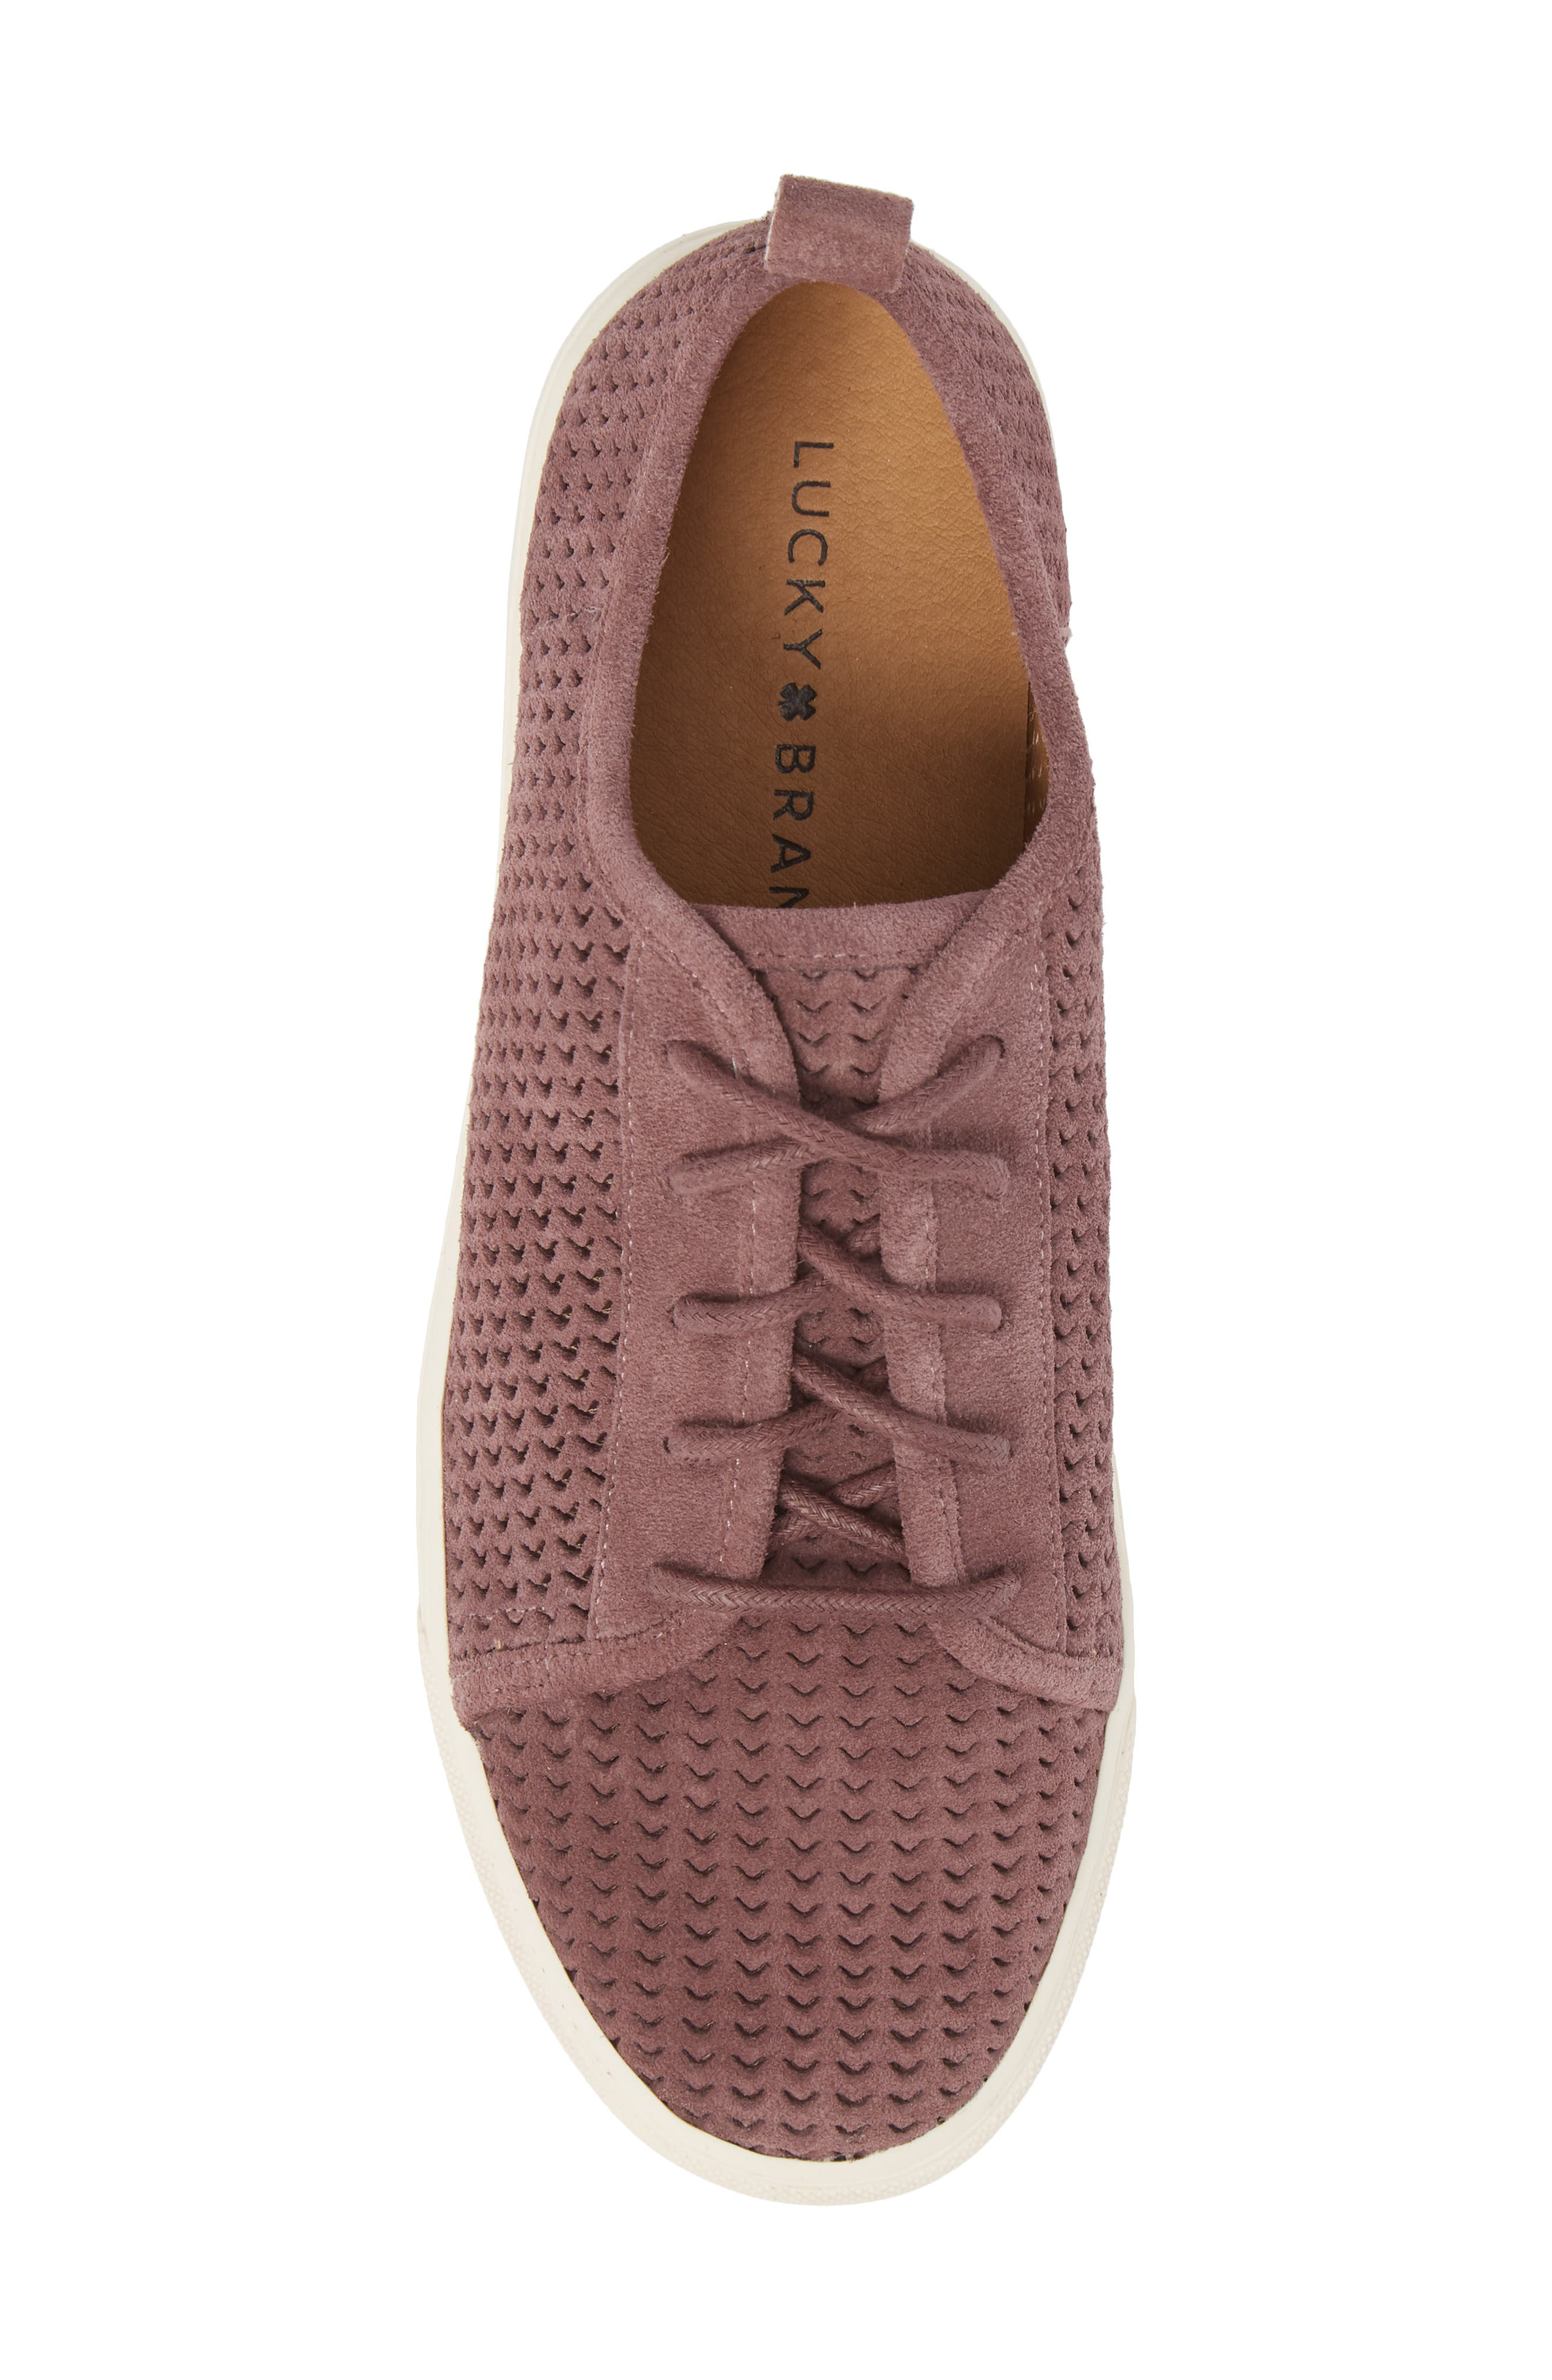 Lawove Sneaker,                             Alternate thumbnail 5, color,                             Berry Smooth Suede